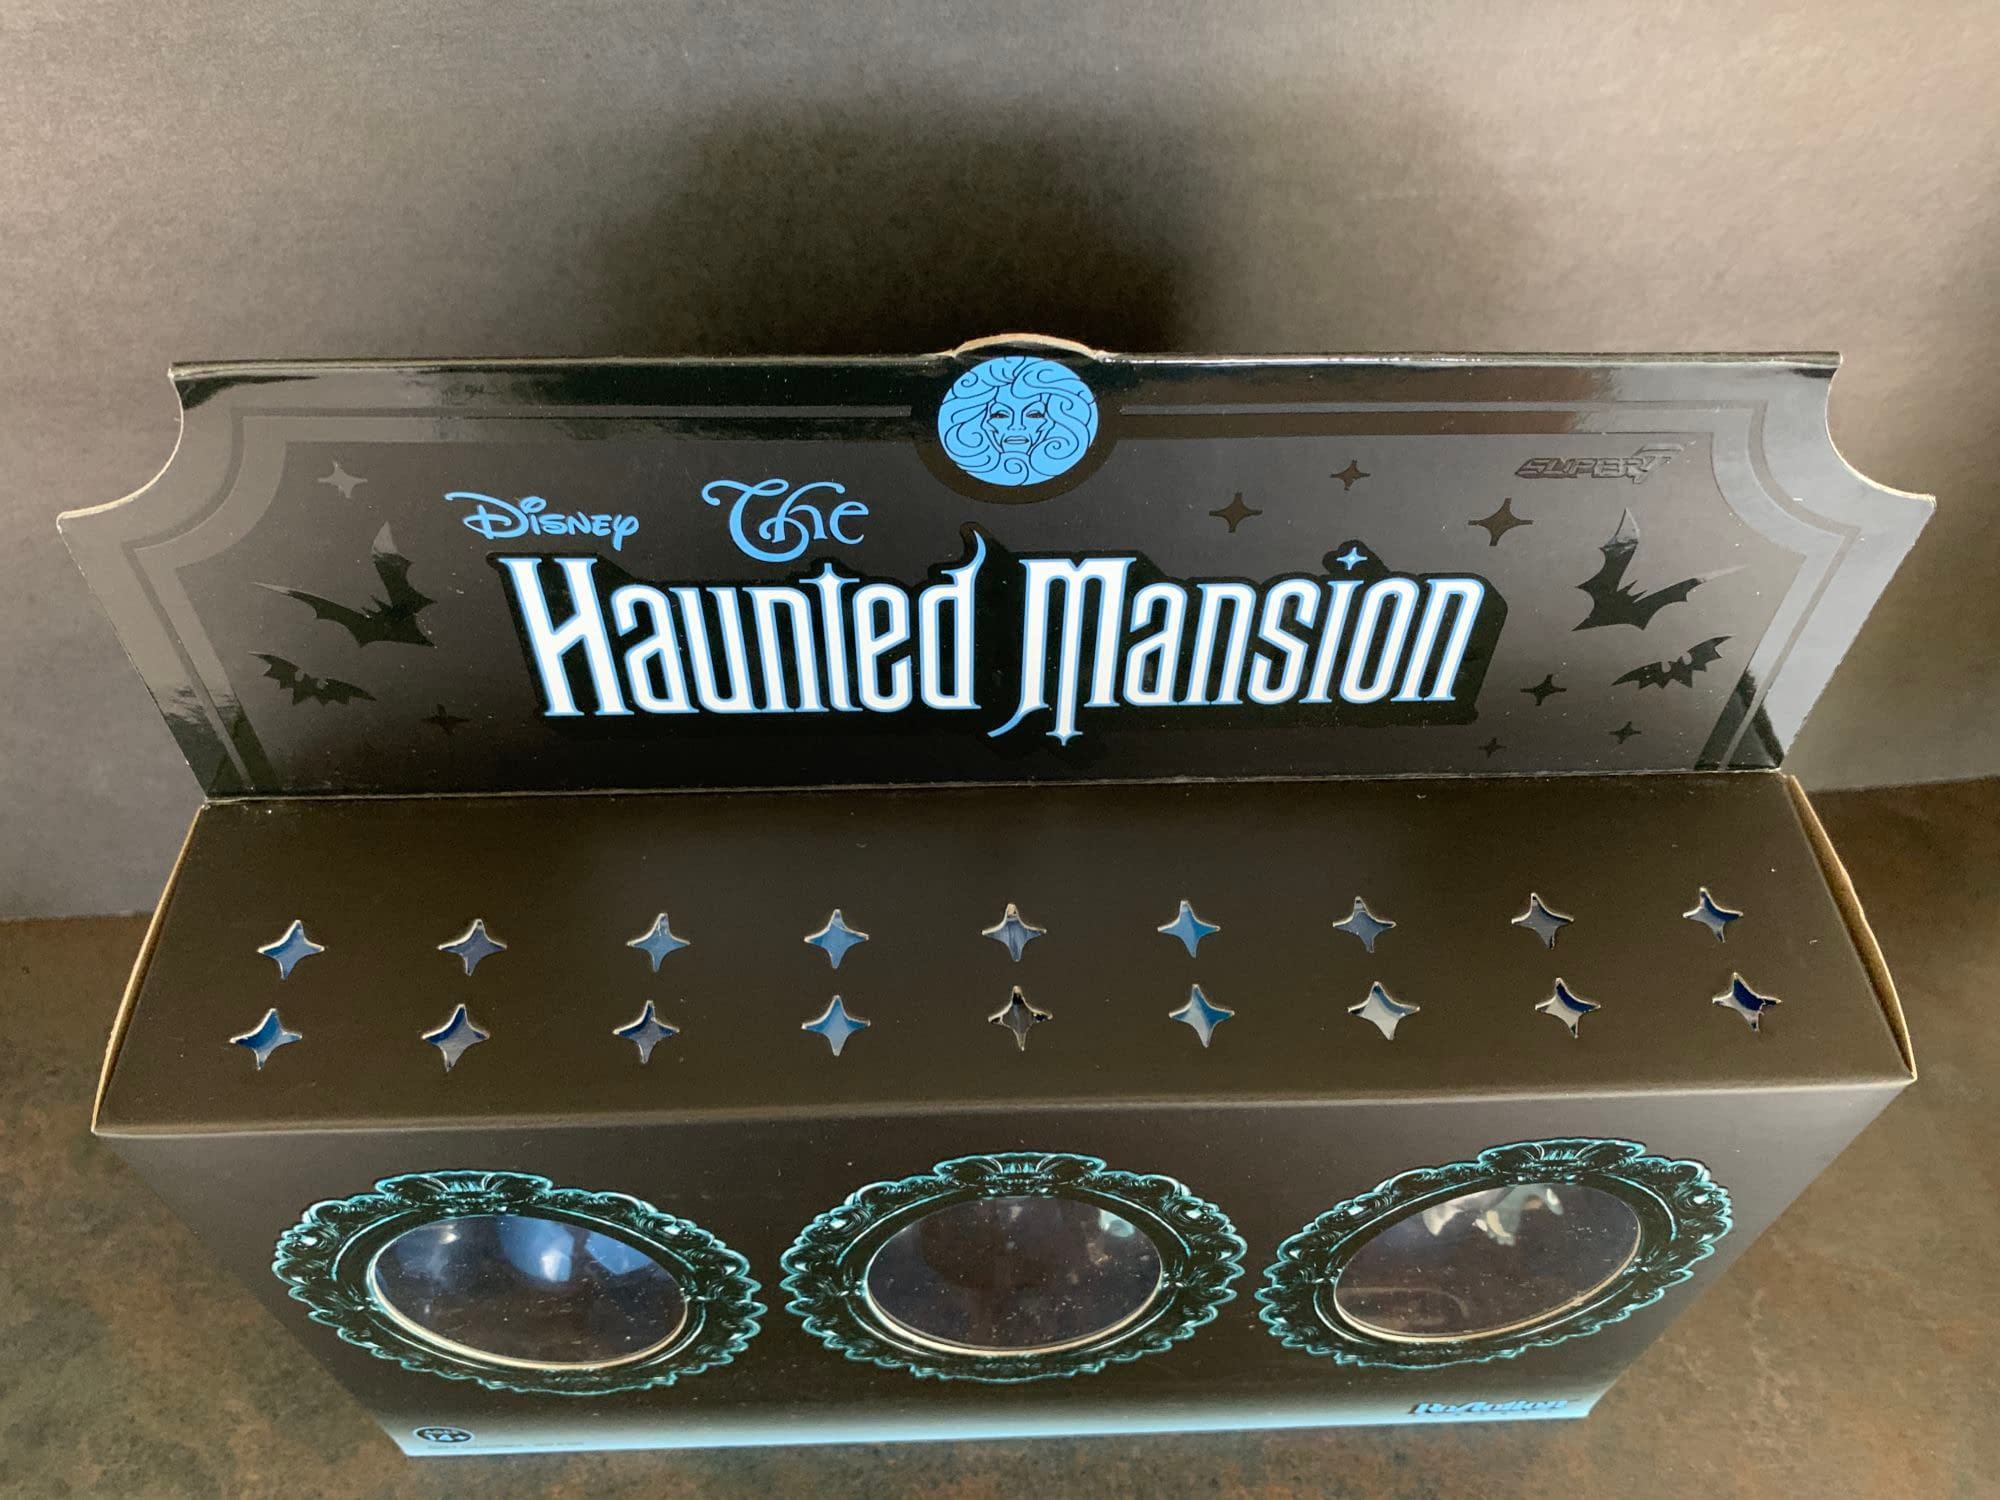 Foolish Mortals, Let's Check Out Super7's Haunted Mansion Figures